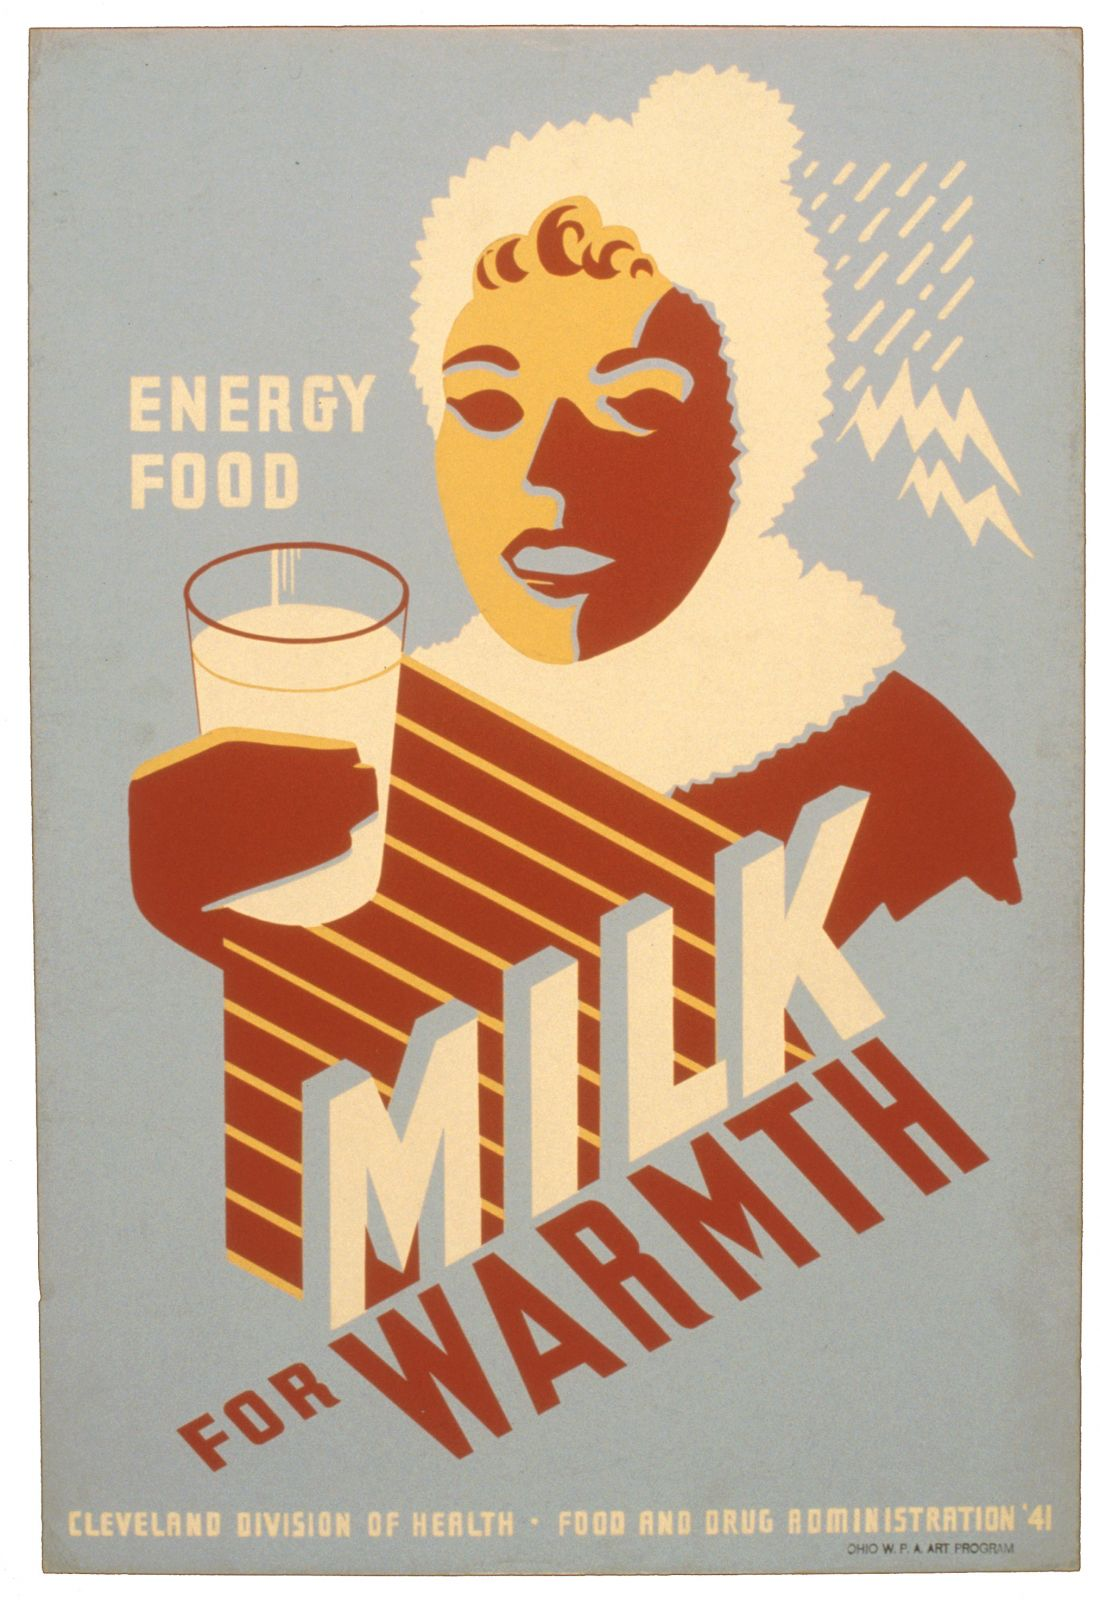 Milk for warmth. Energy food.